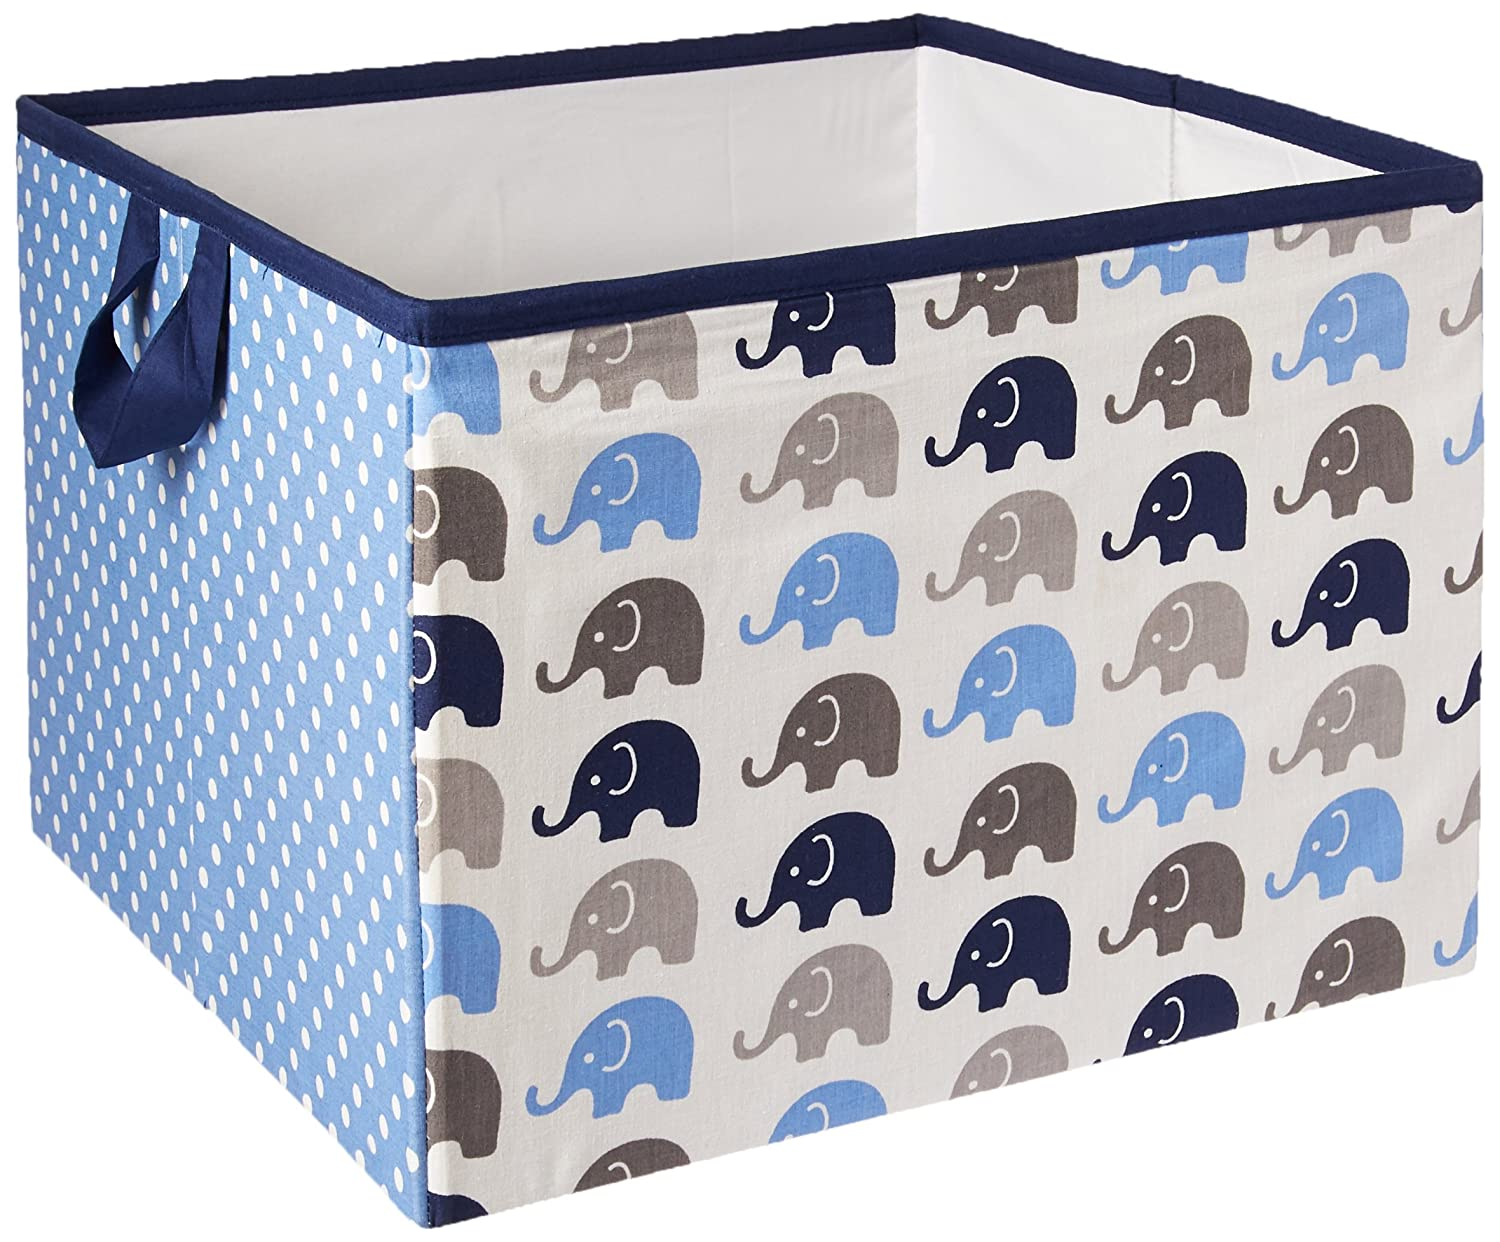 Bacati Elephants Storage Tote Basket, Blue/Grey, Large EBGSLB